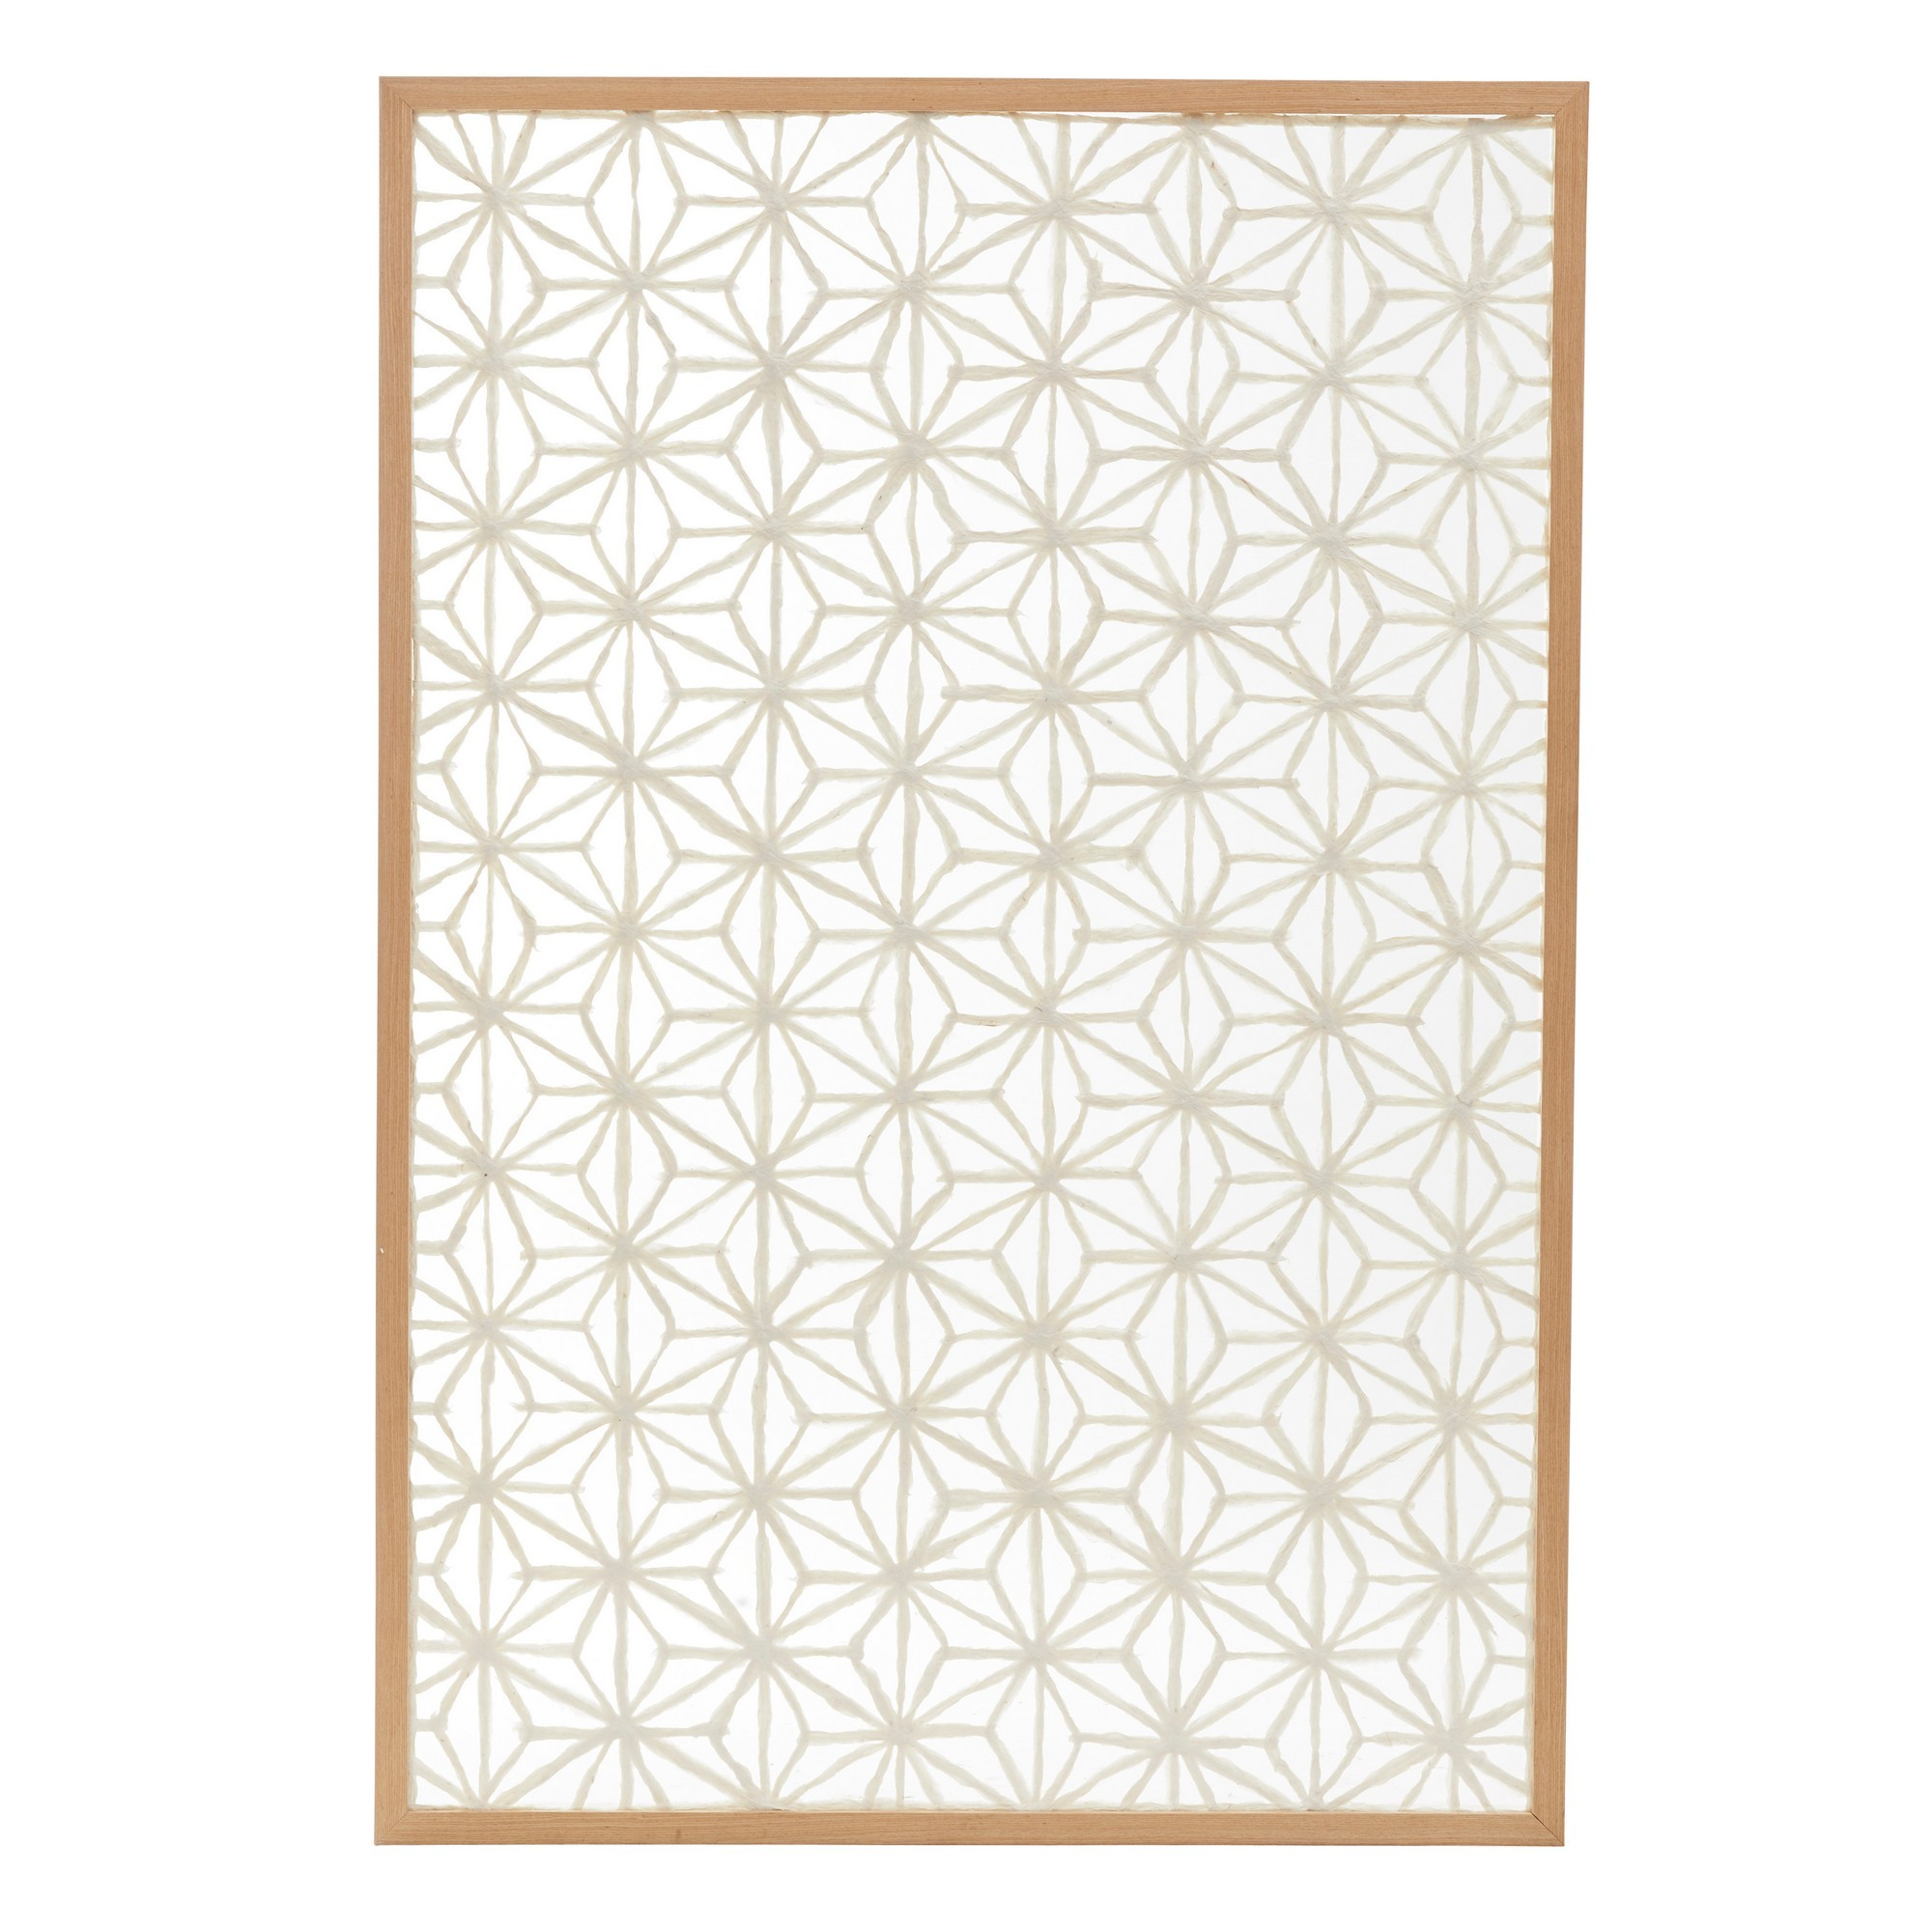 Ashland Framed Paper Art Wall Decor, 124cm